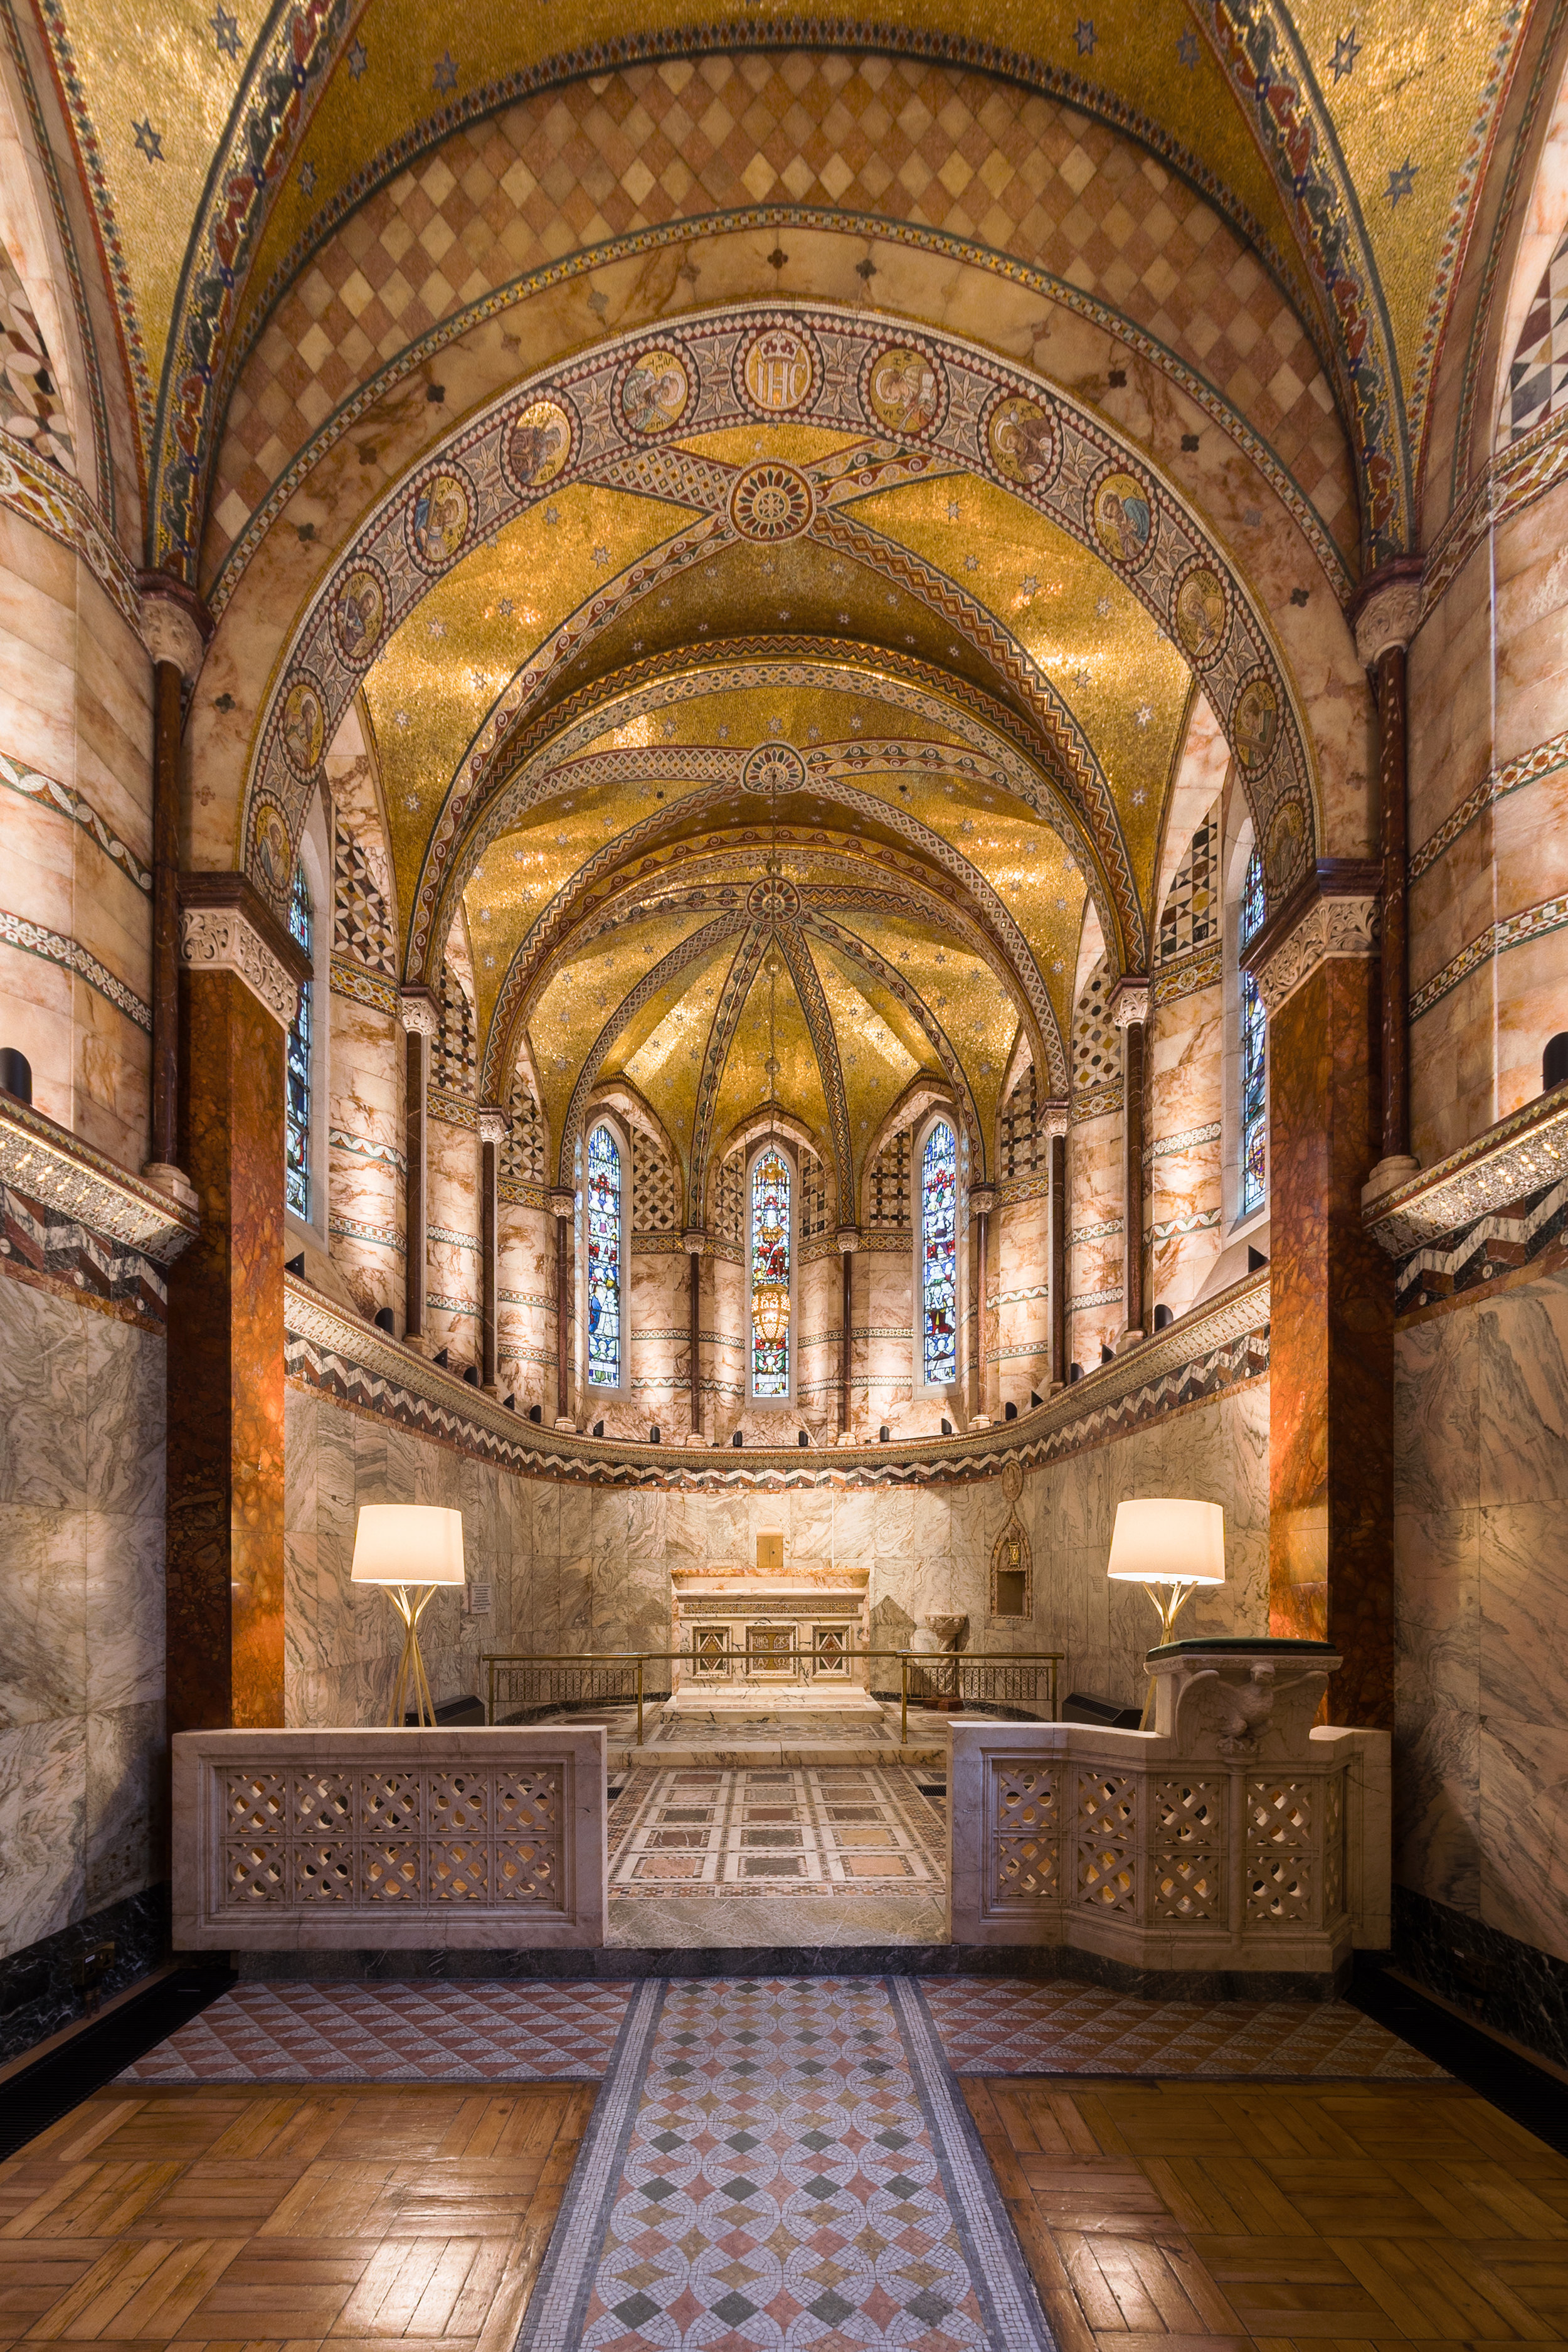 Fitzrovia Chapel © User:Colin / Wikimedia Commons, CC BY-SA 4.0,  https://commons.wikimedia.org/w/index.php?curid=62577519